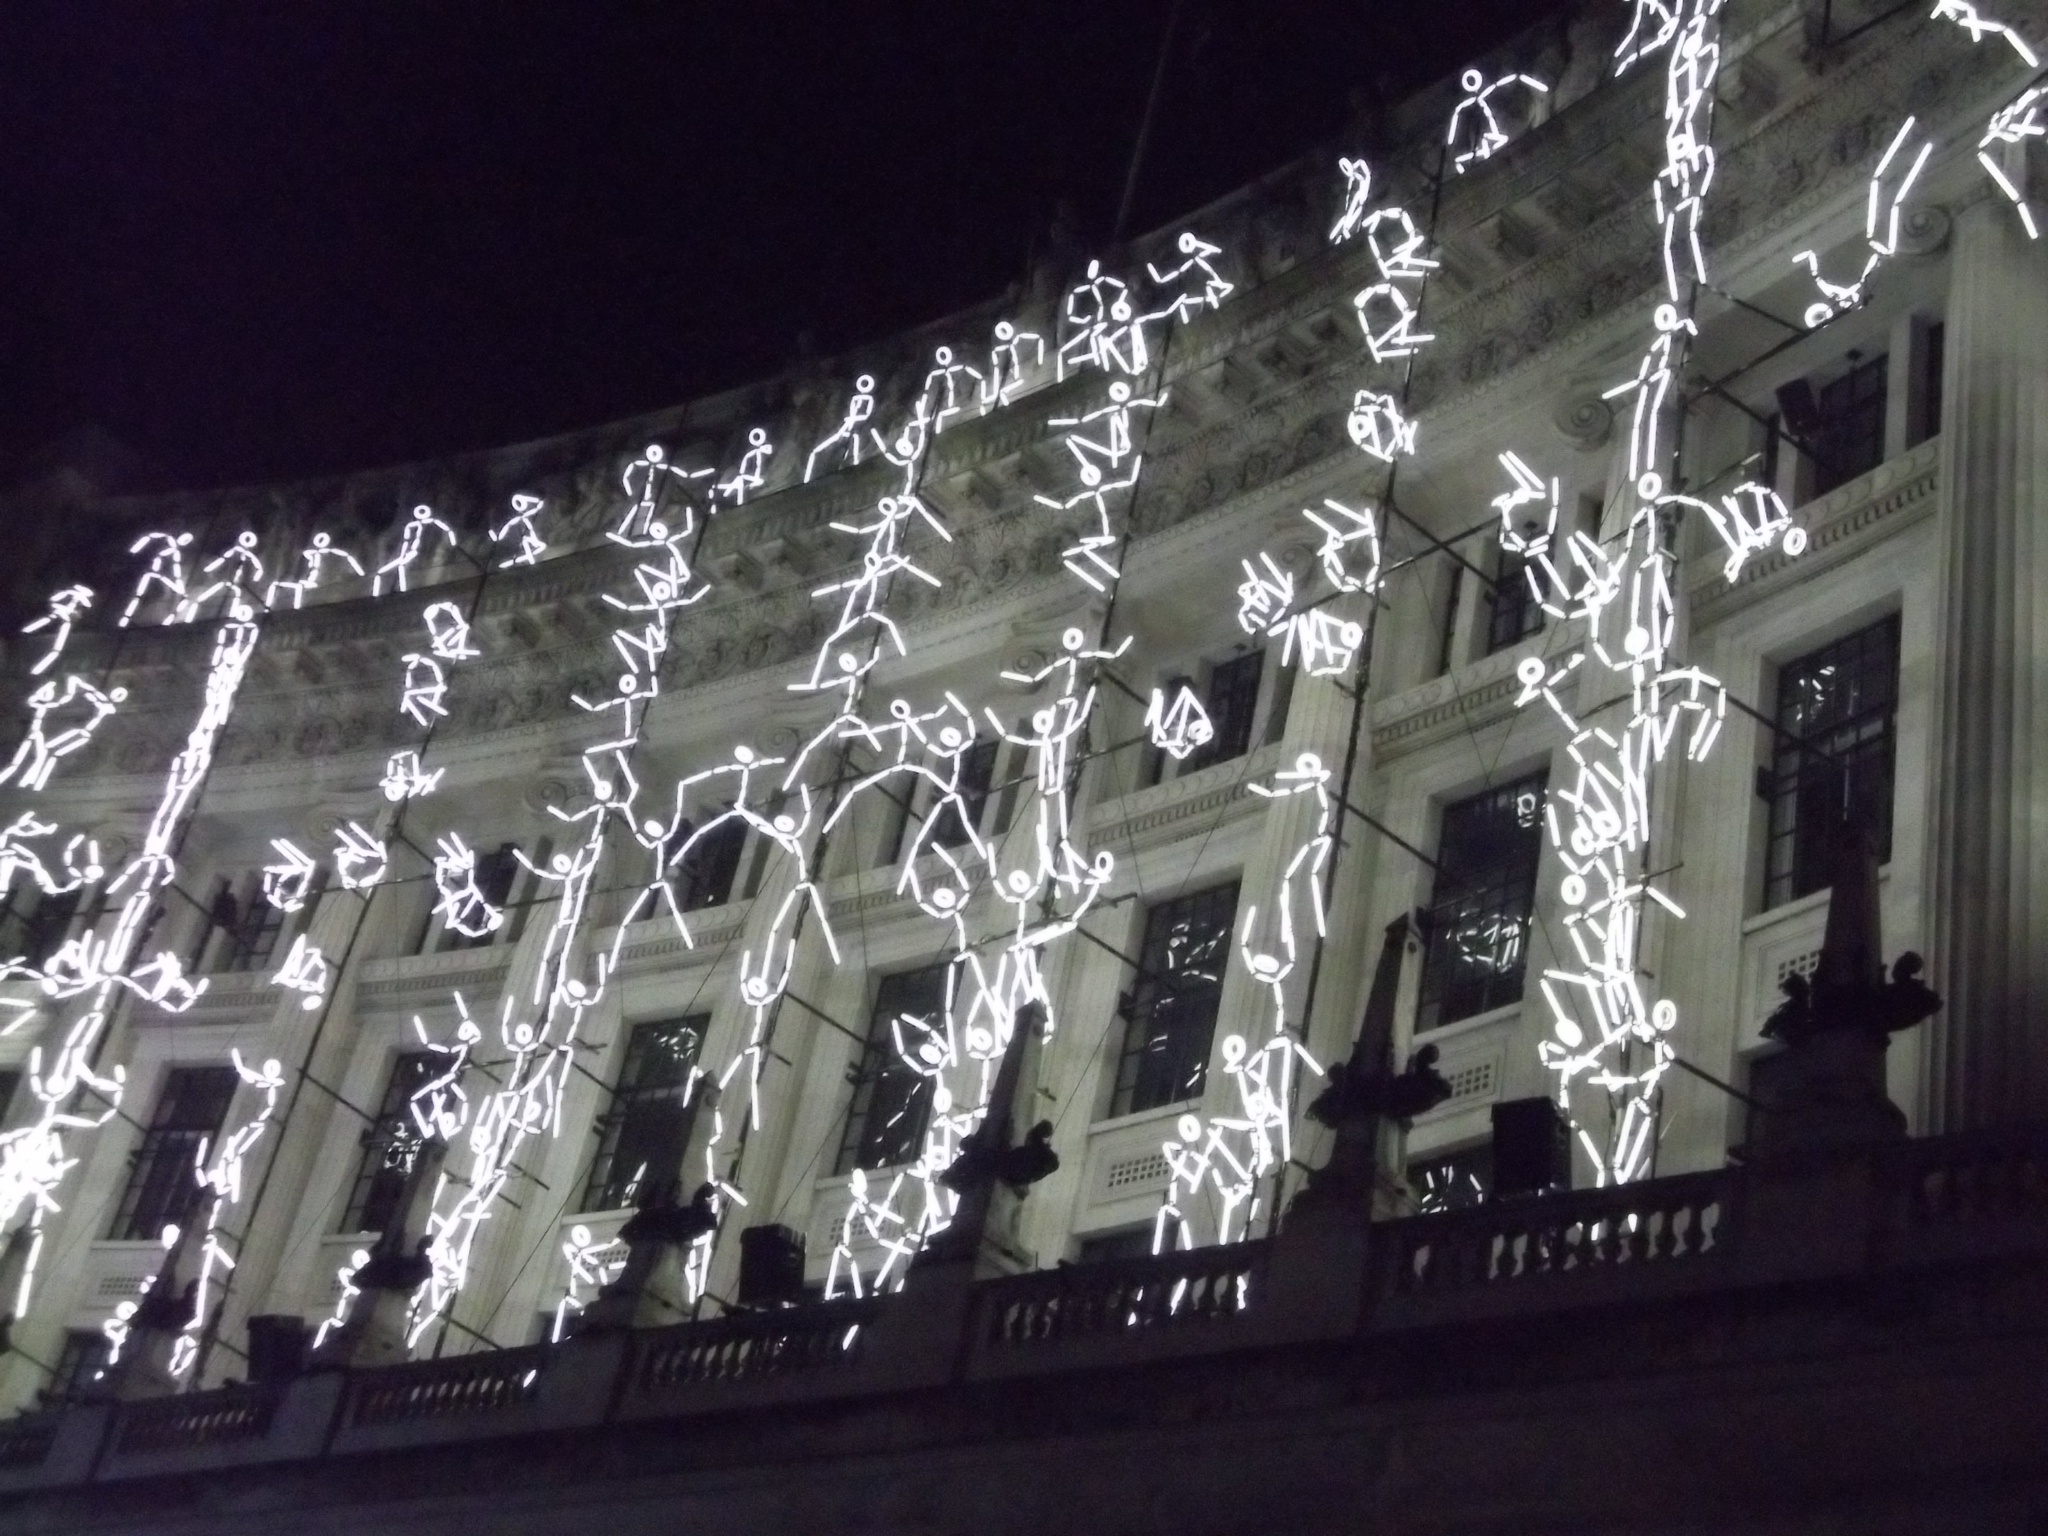 regents street lights to music  by traceybiddlecombe3666